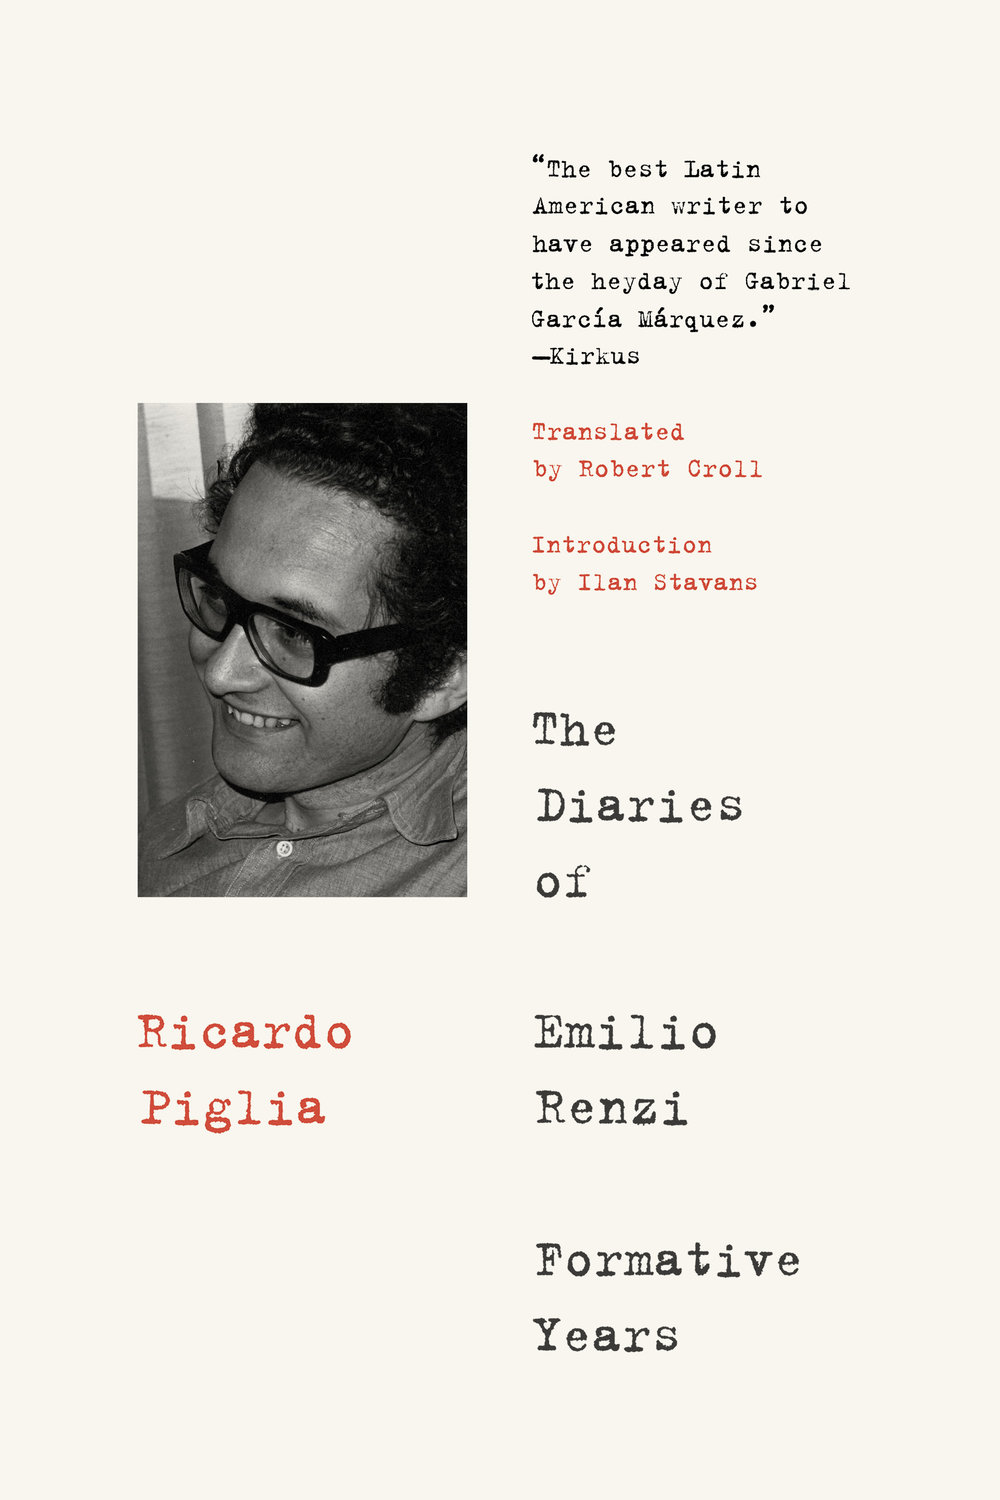 the diaries of emilio renzi formative years restless books